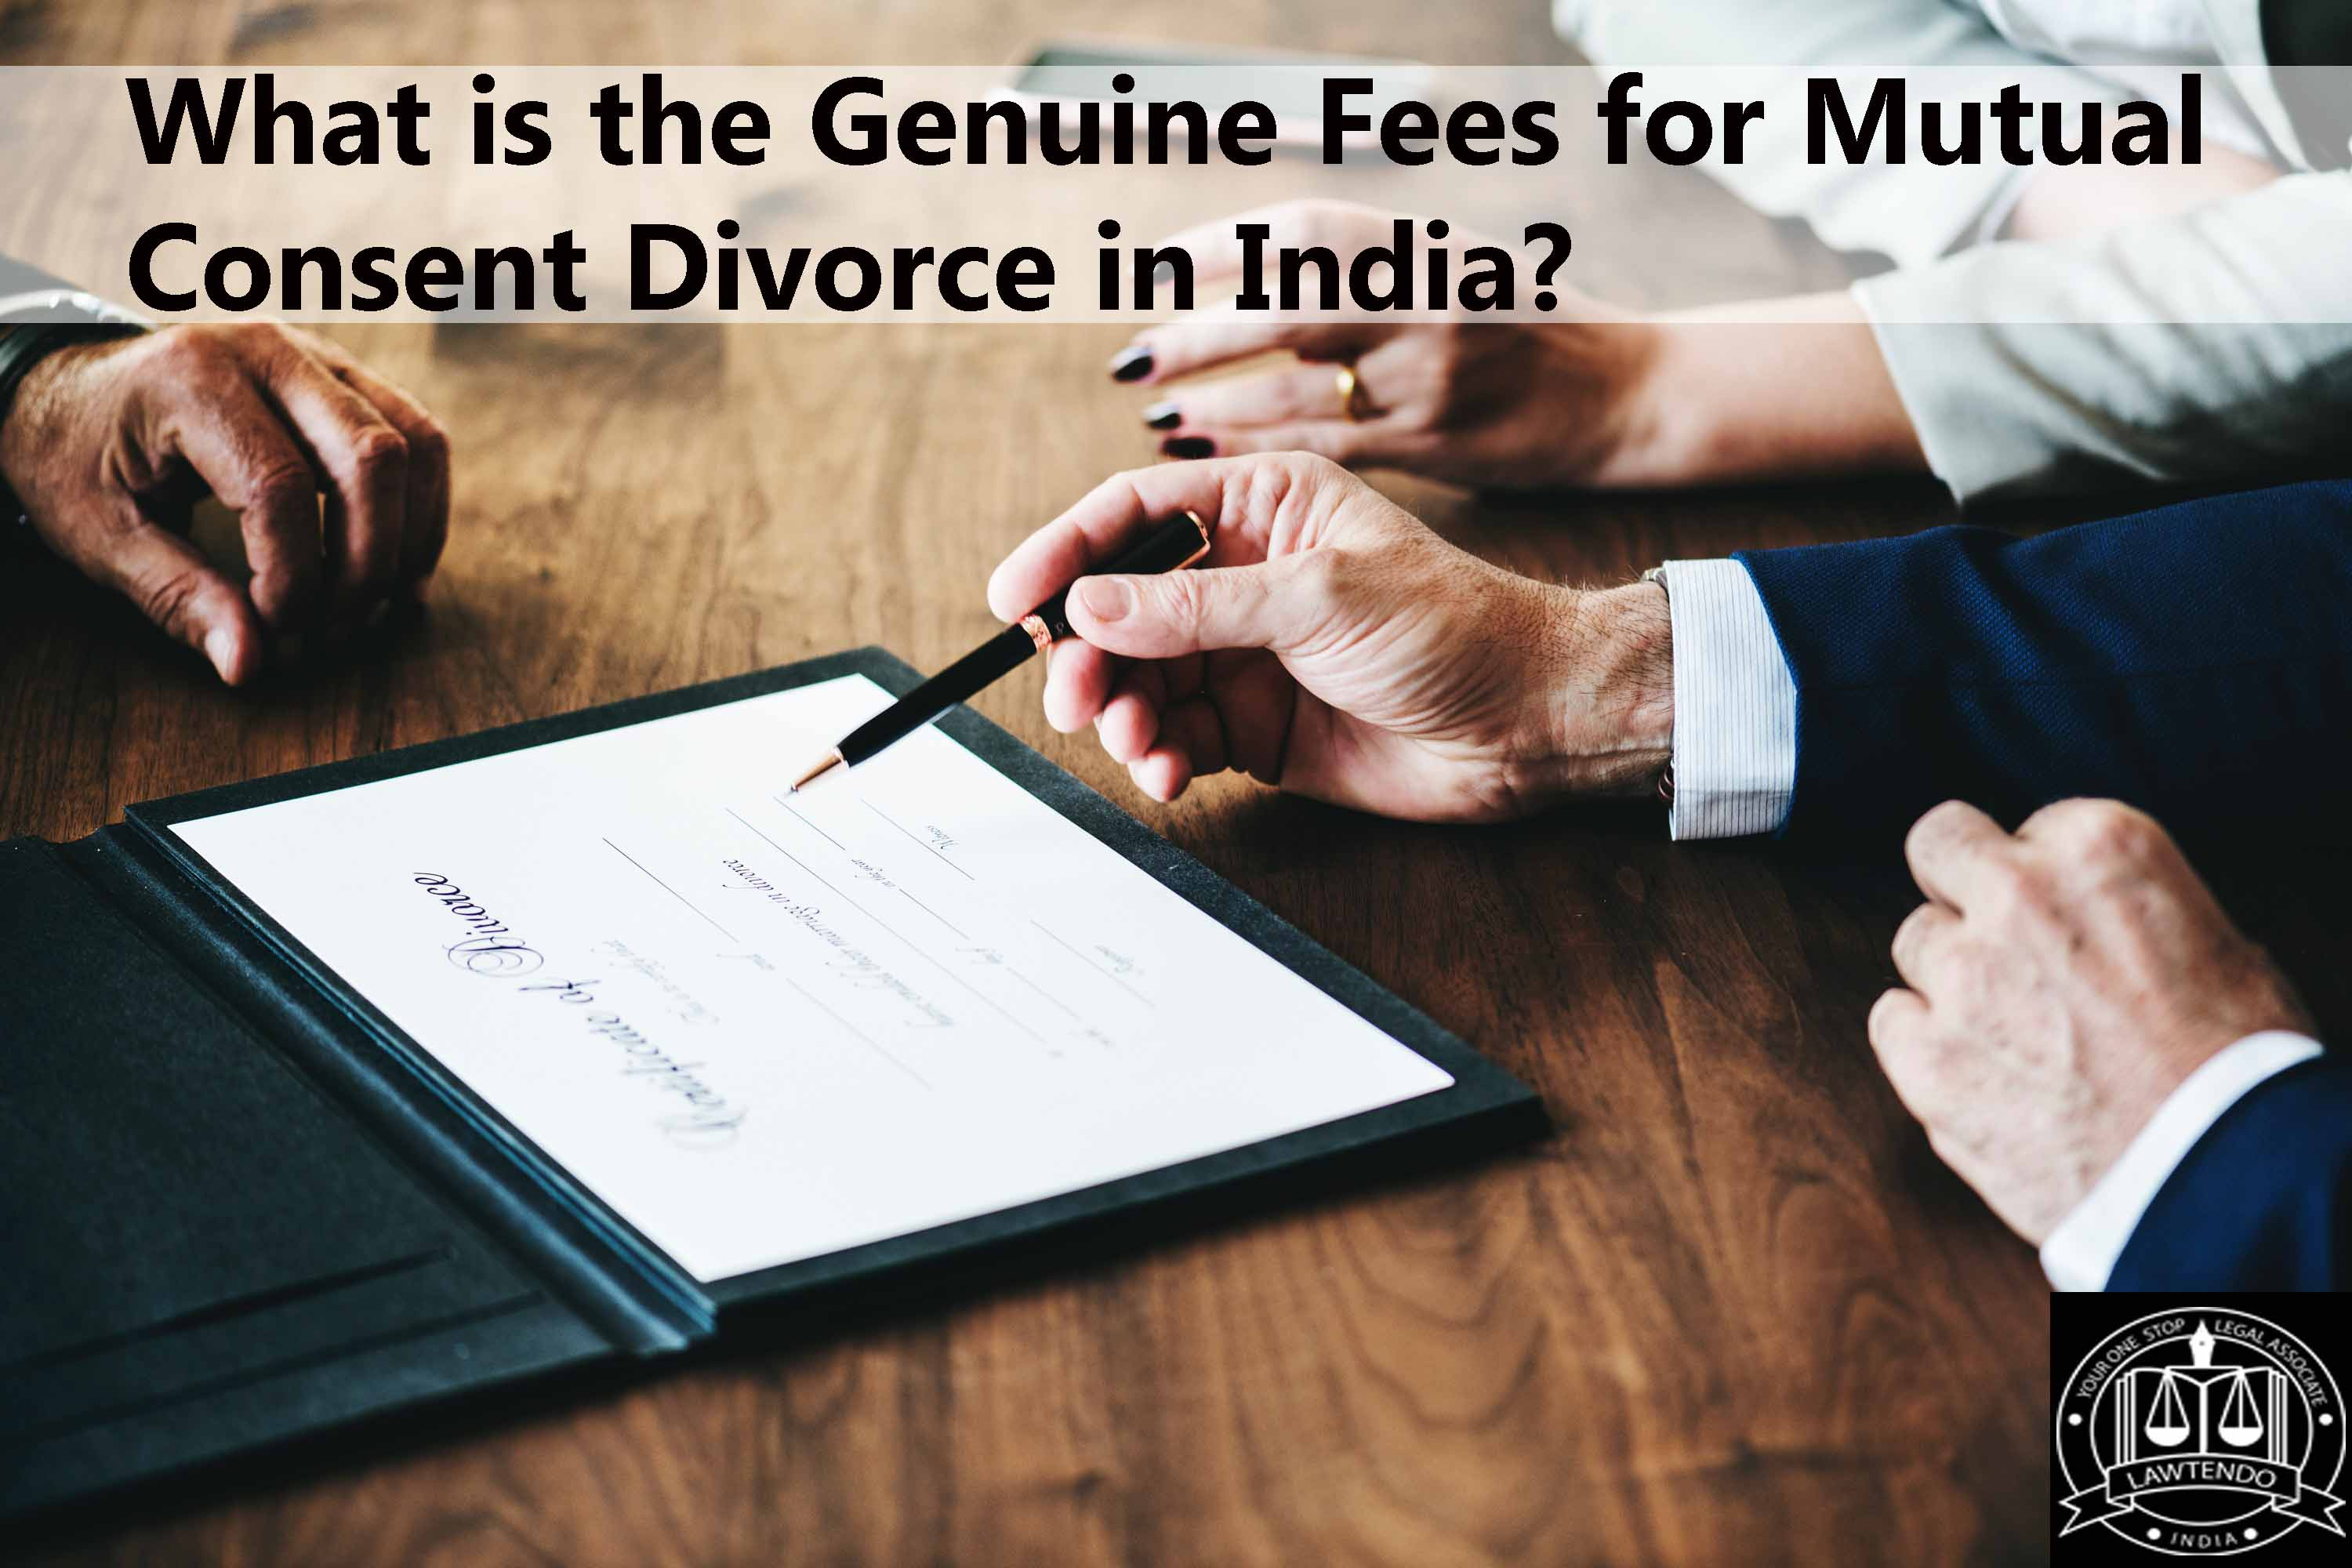 What is the Genuine Fees of the Mutual Consent Divorce in India?